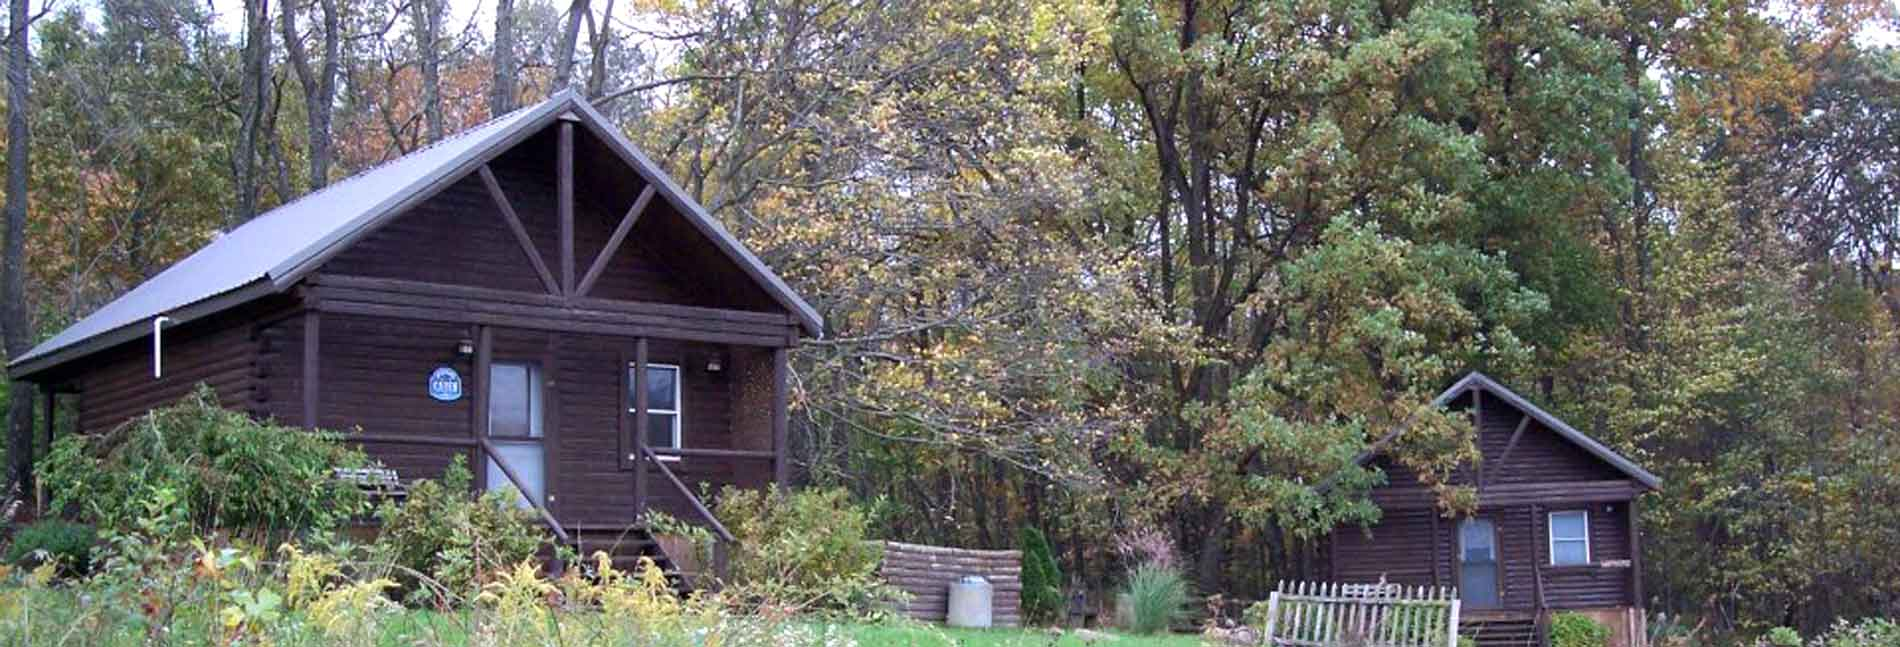 Sunset Ridge Log Cabins For Romantic Getaways In Ohio